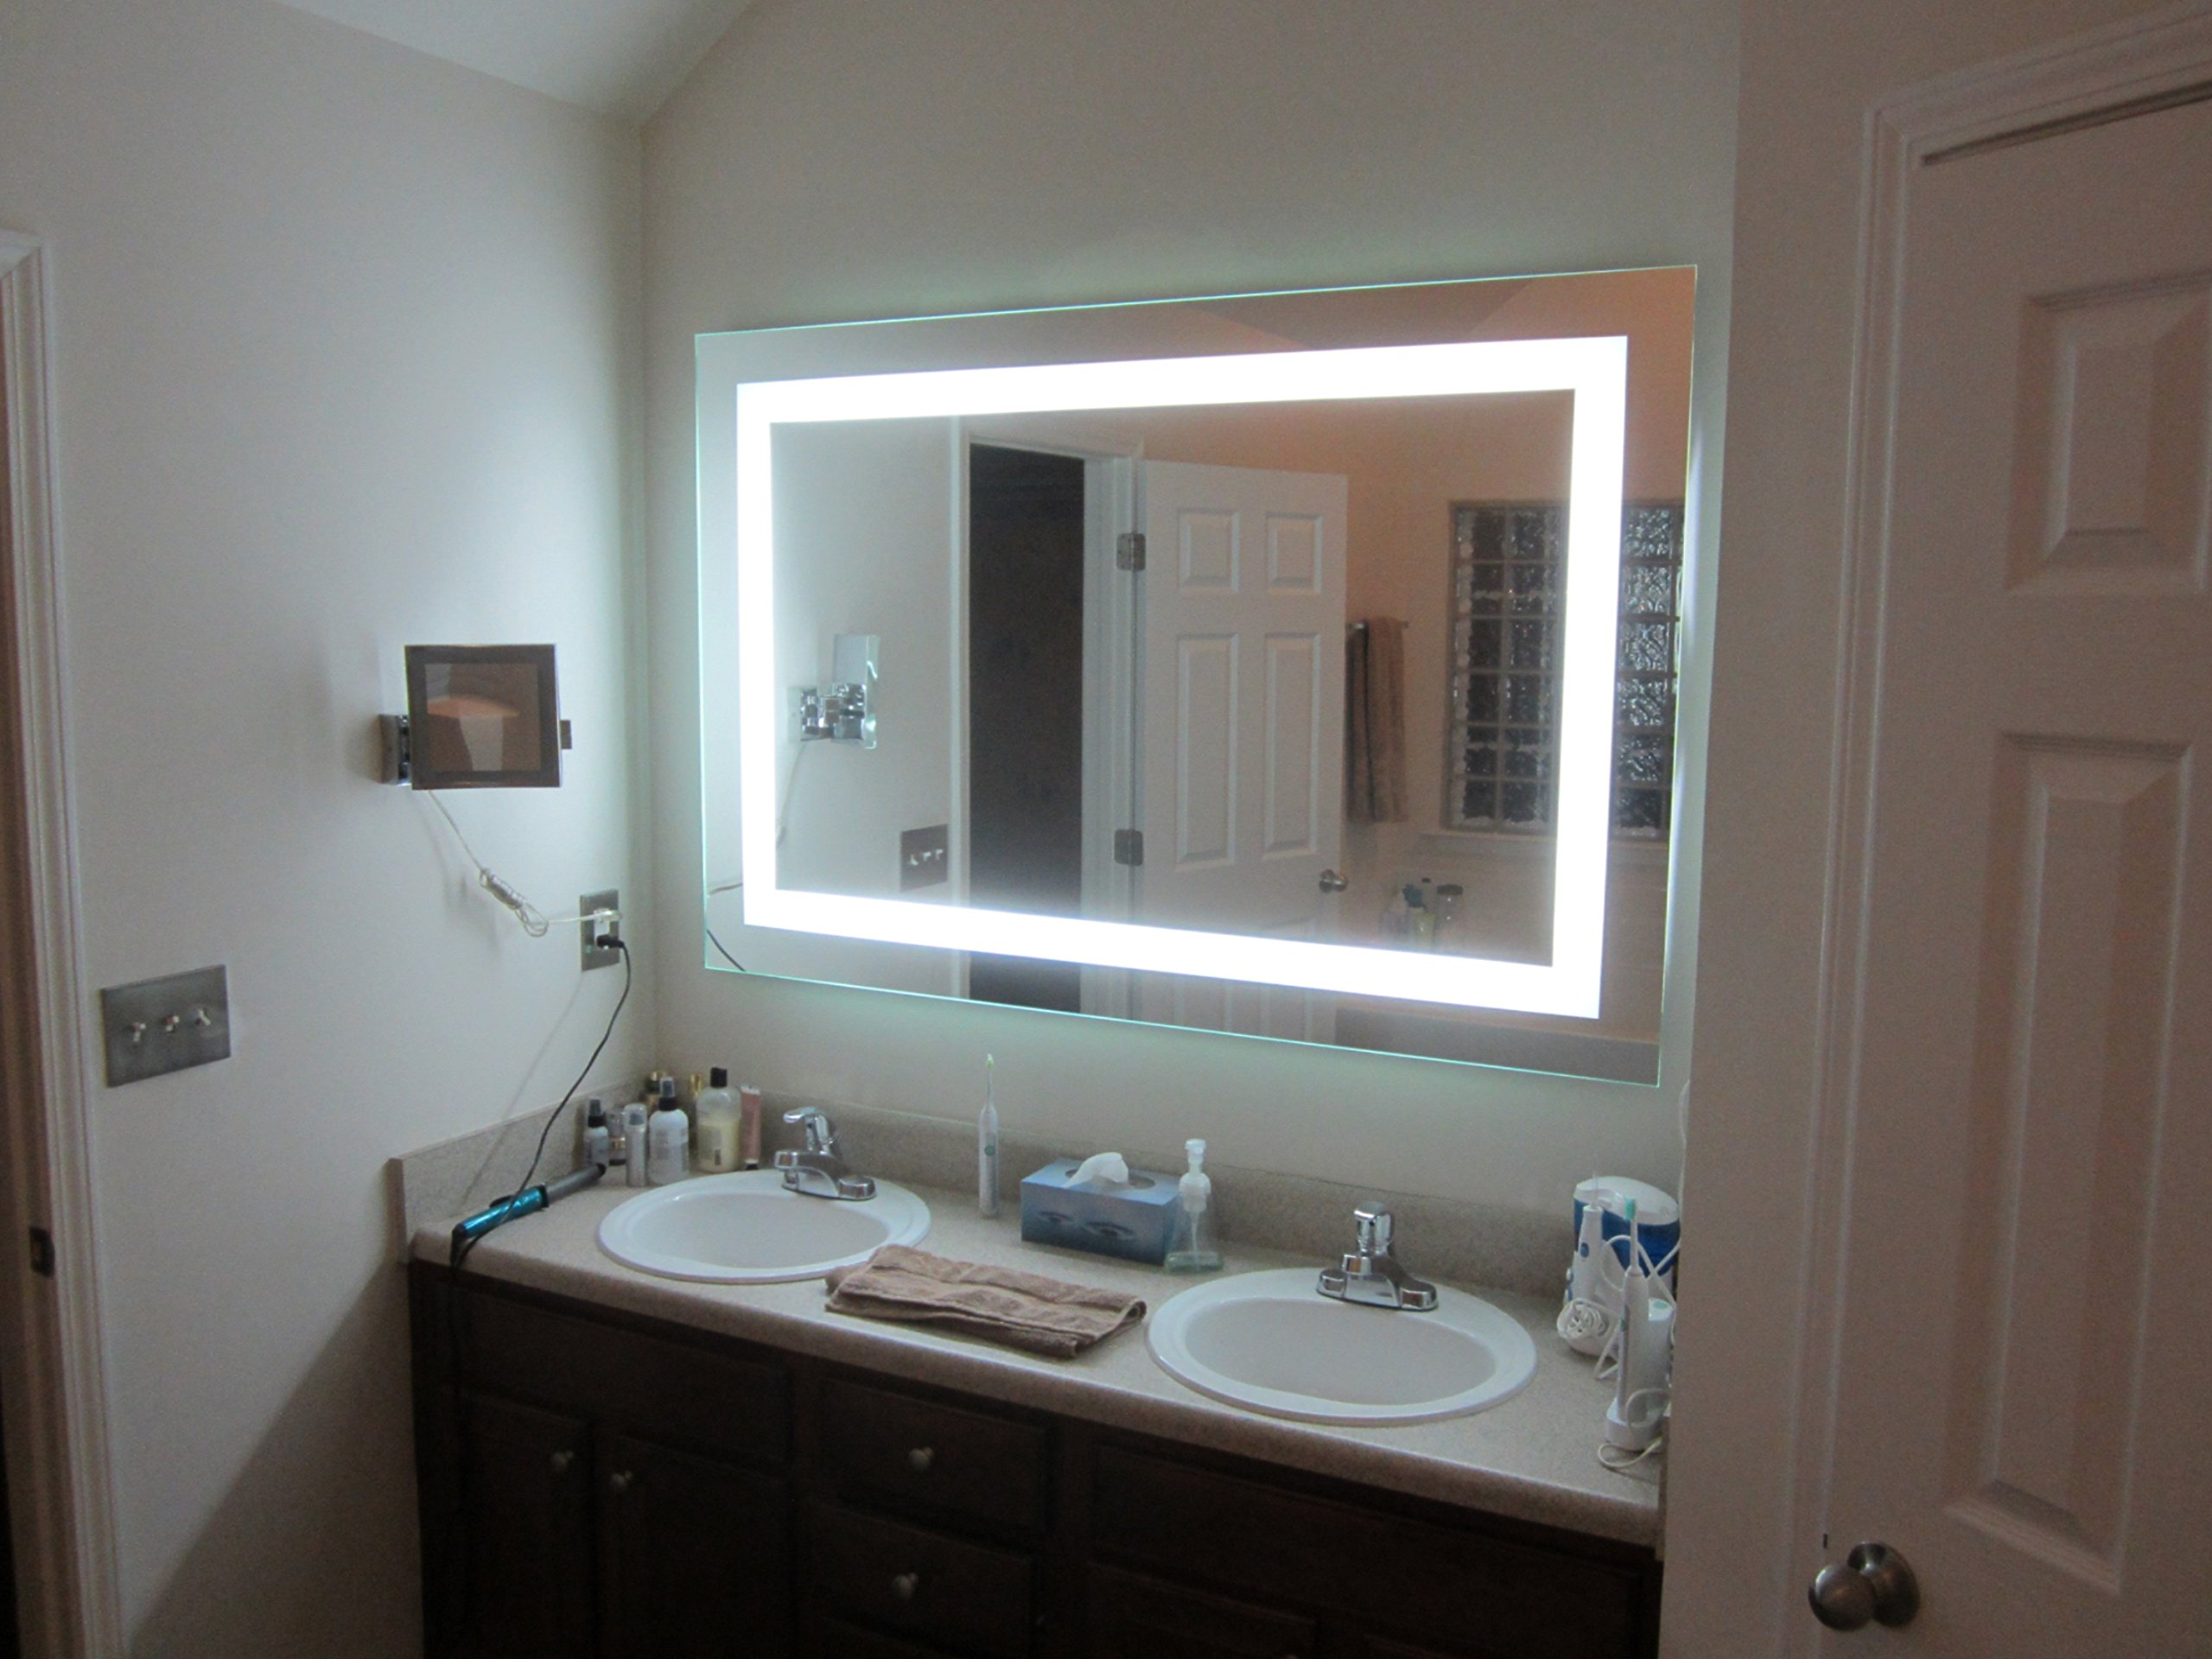 Lighted Vanity Mirror LED MAM86040 Commercial Grade 60'' Wide x 40'' Tall